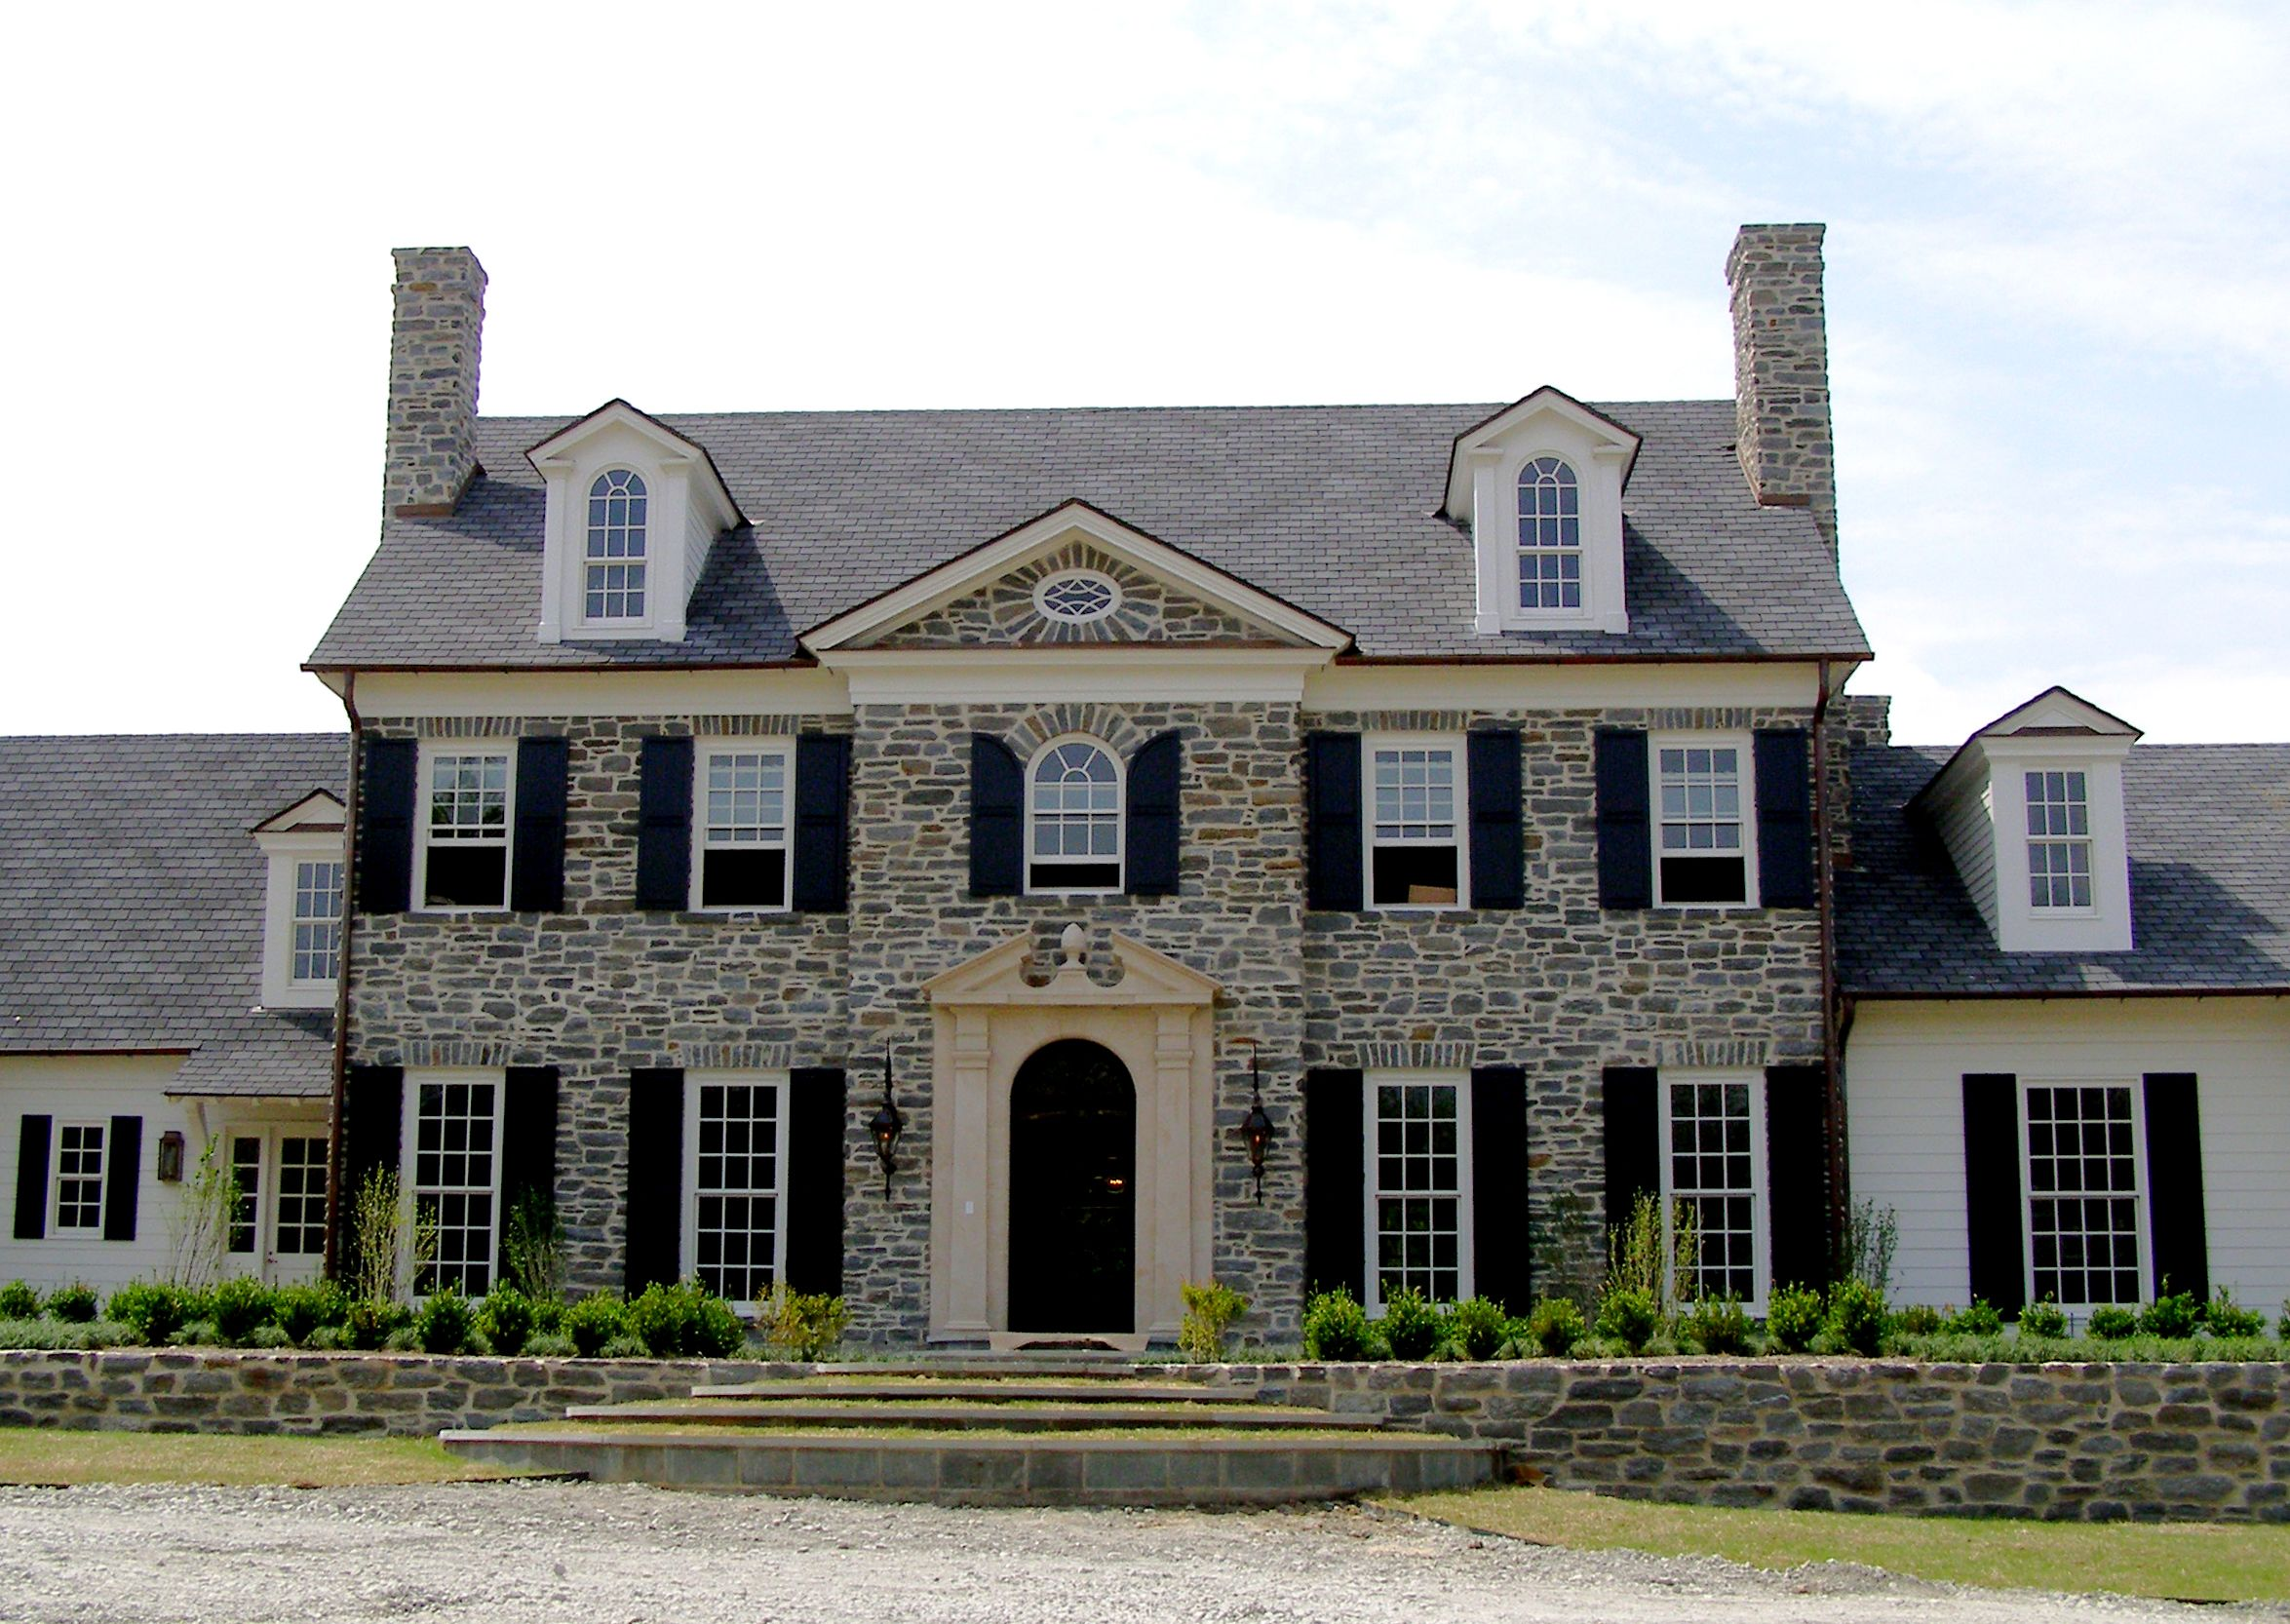 Front Entry Stone Facade Of An American Style Home: houses with stone facade